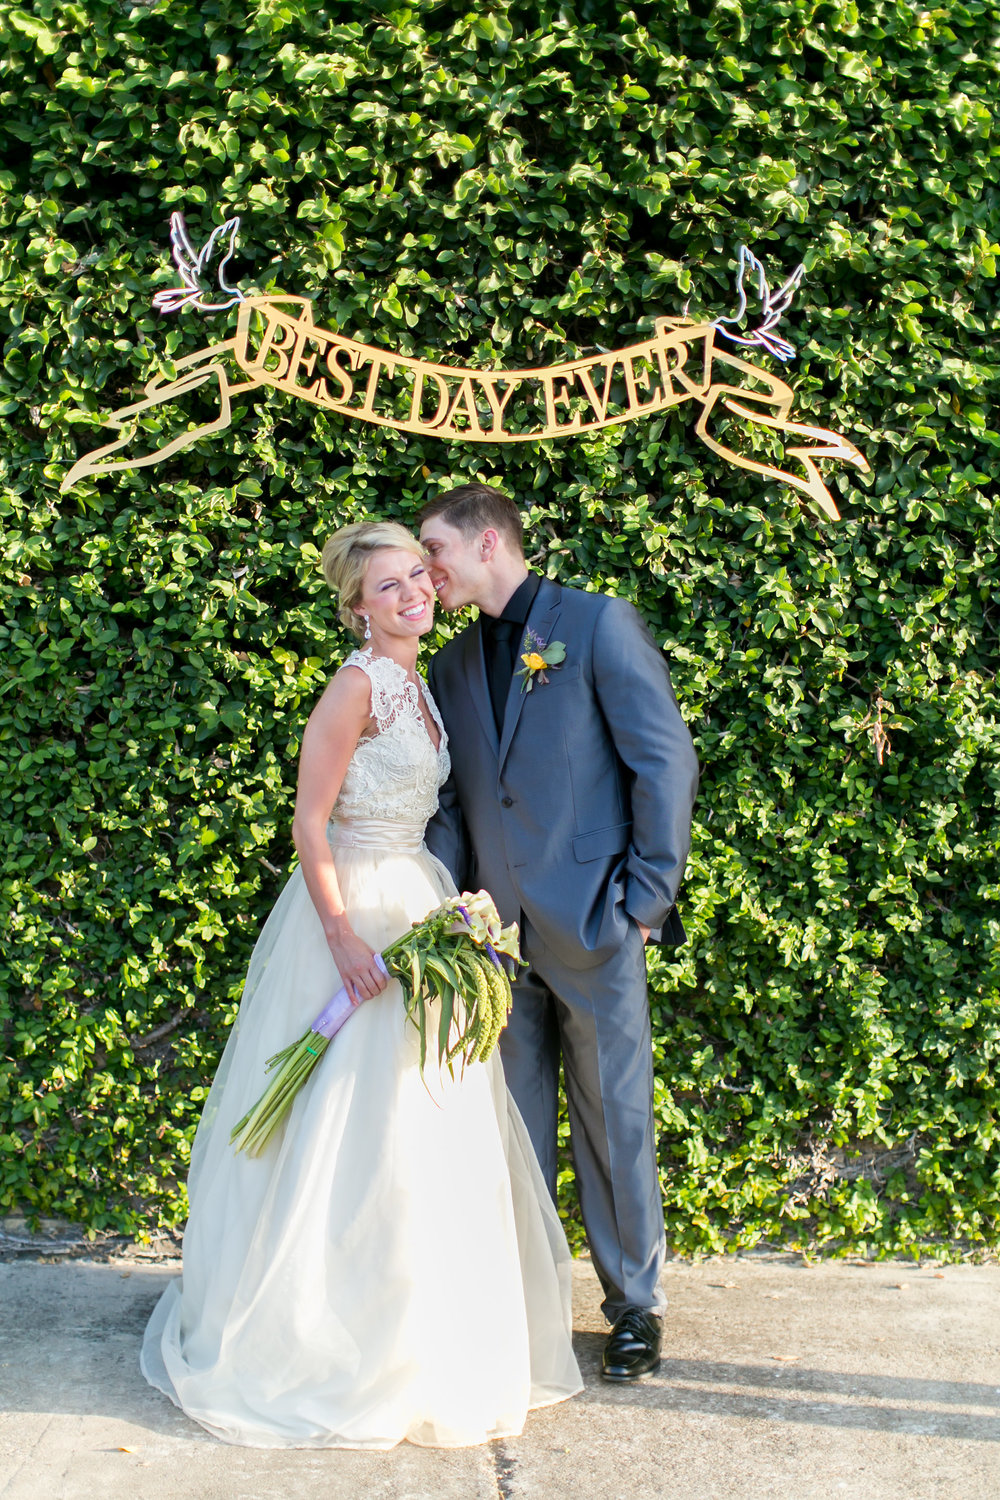 Best Day Ever laser cut reception sign